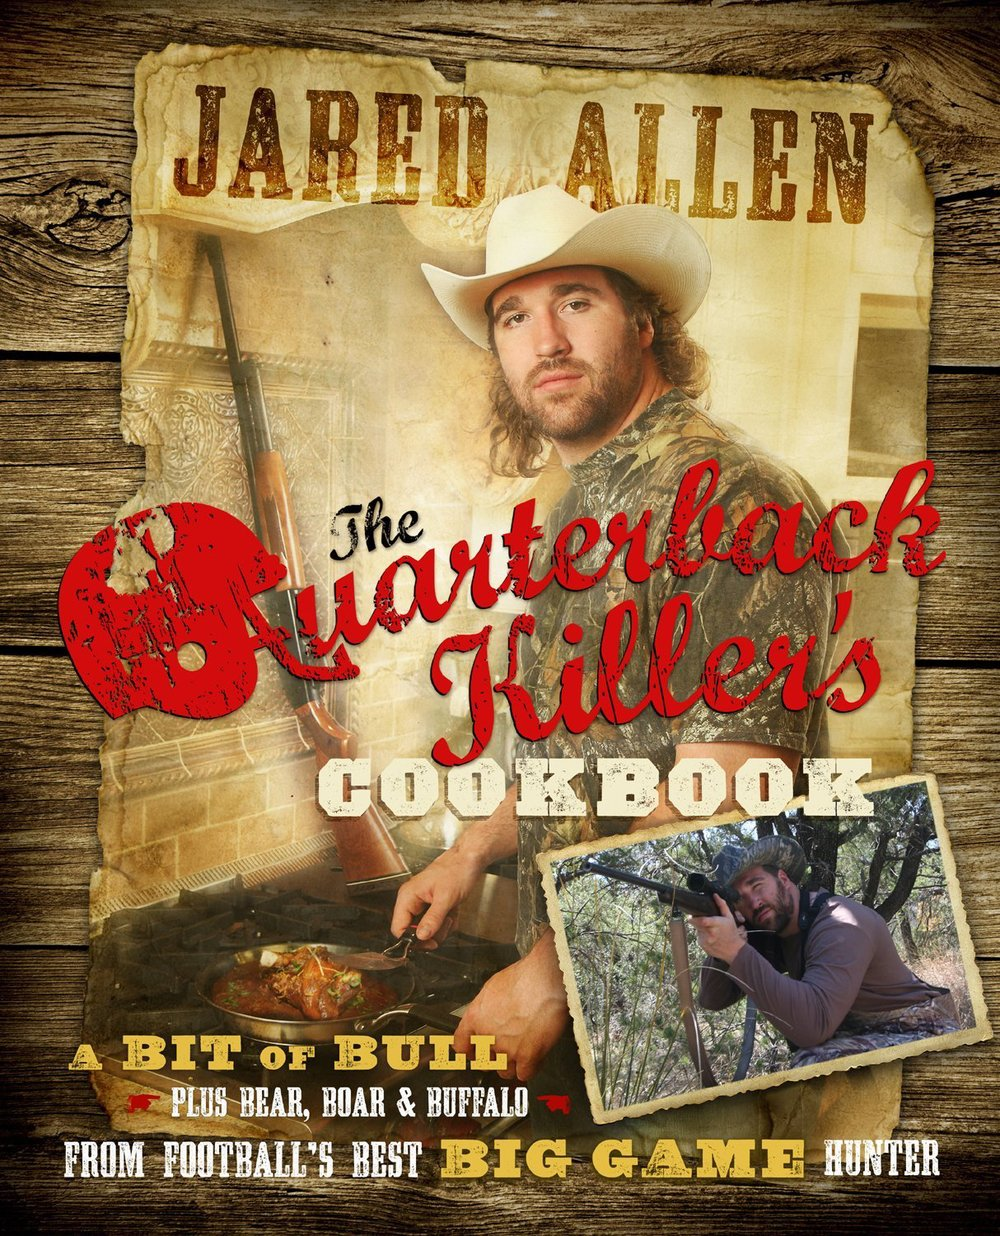 TST_JaredAllen_QuarterbackKillerCookbook_photo.jpeg